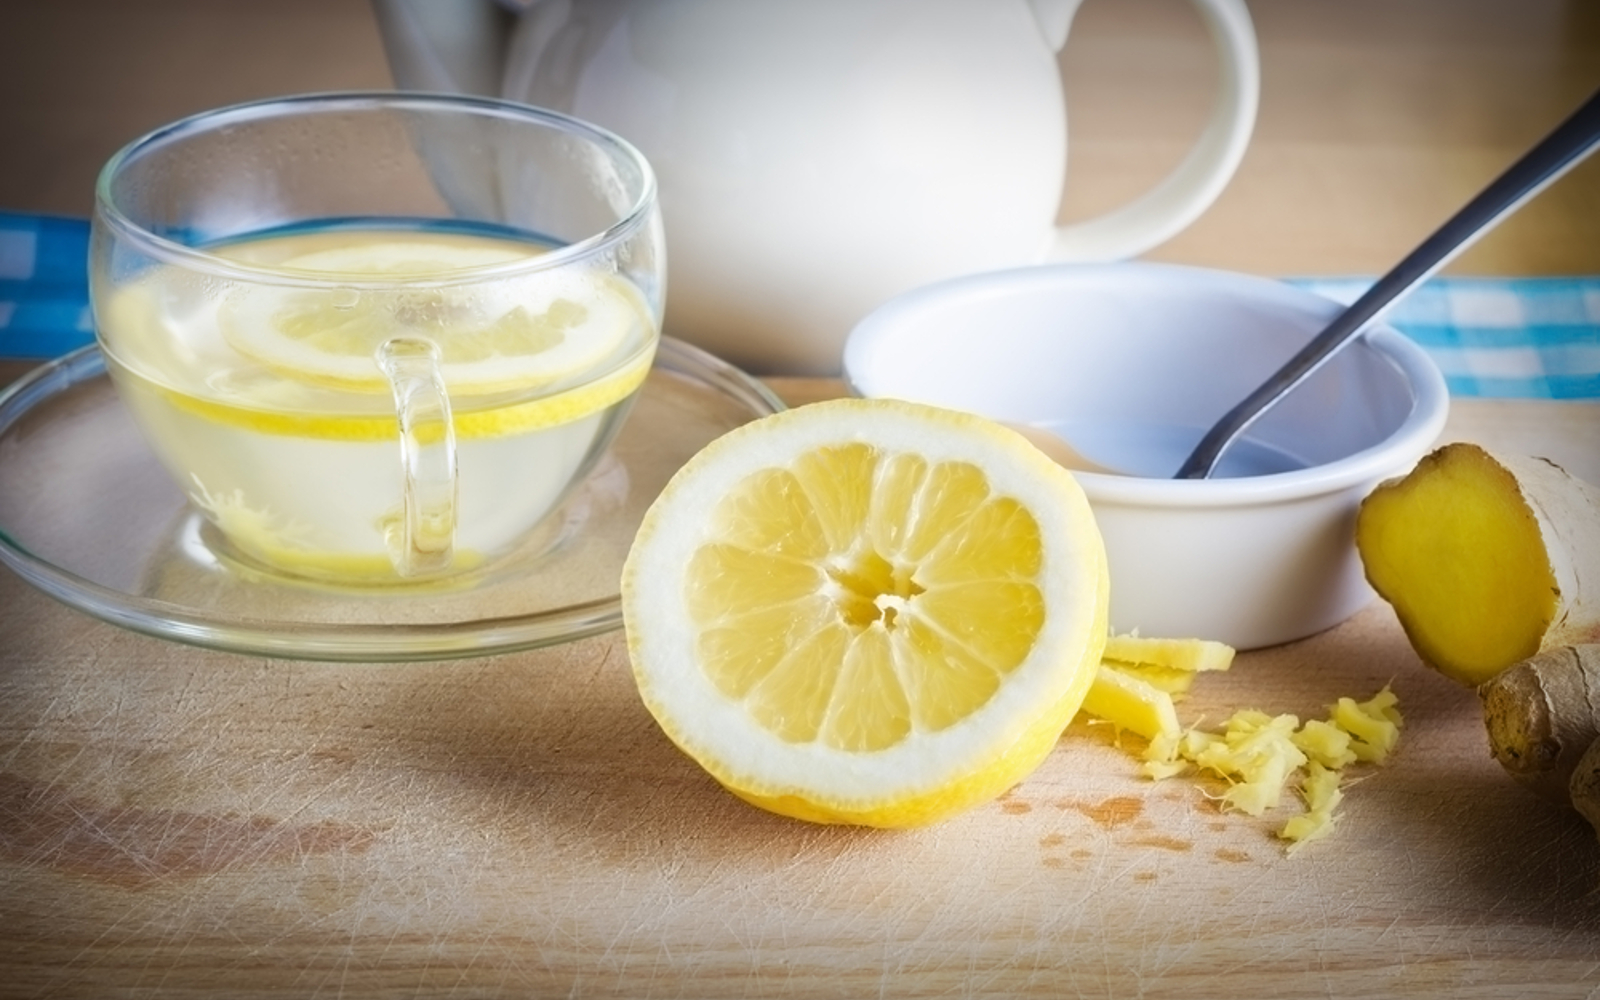 Warm Lemon Water with Ginger